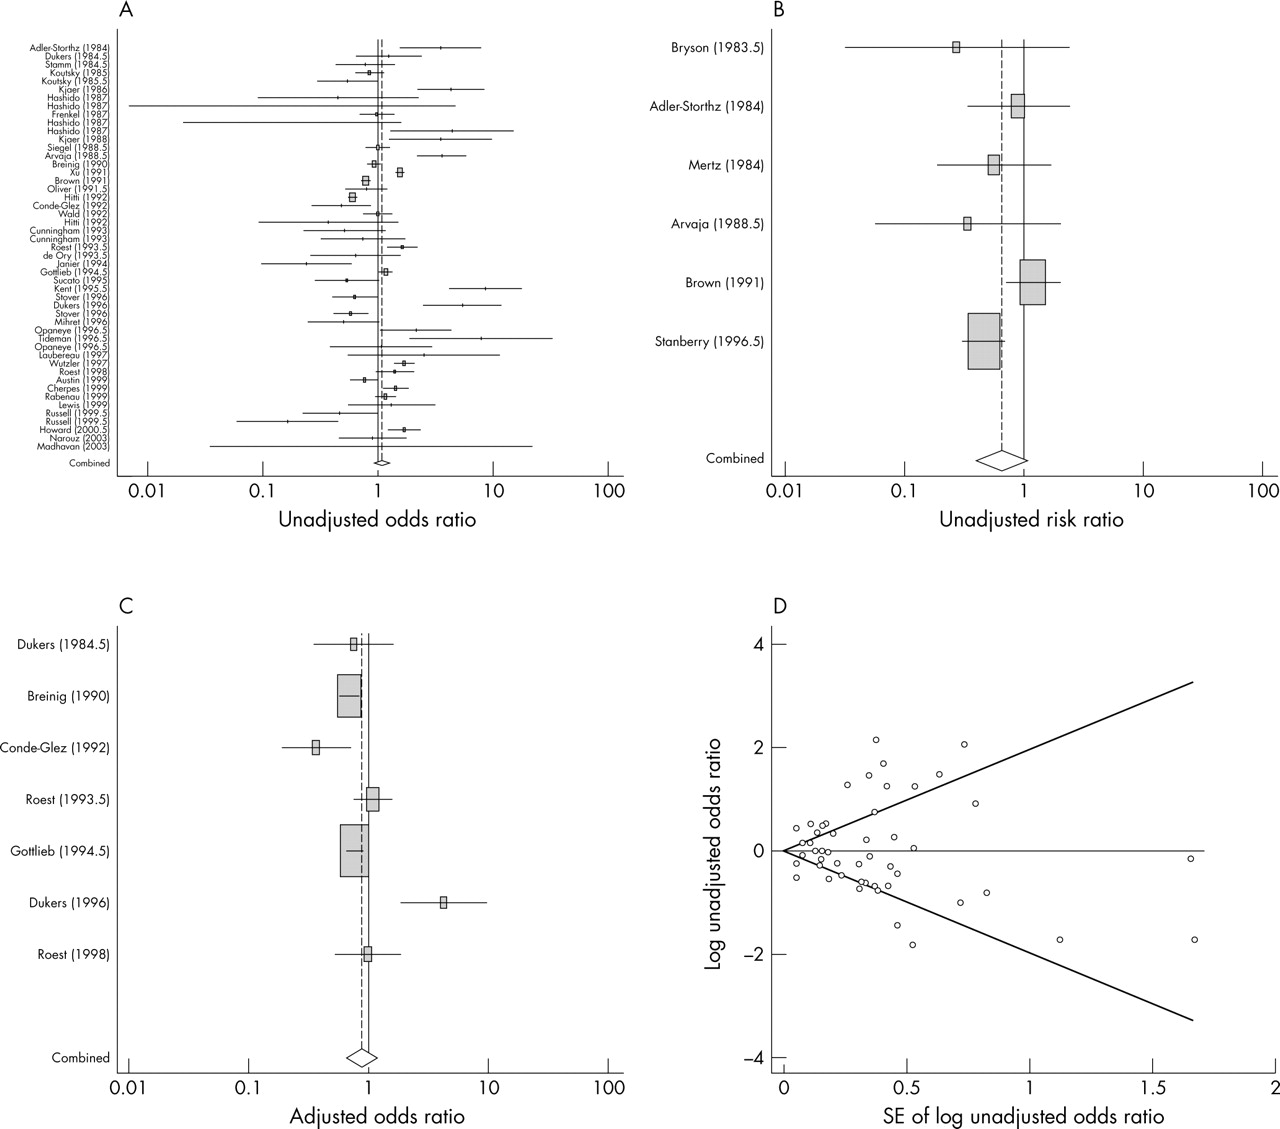 A Systematic Review Of The Epidemiology And Interaction Of Herpes Simplex Virus Types 1 And 2 Sexually Transmitted Infections